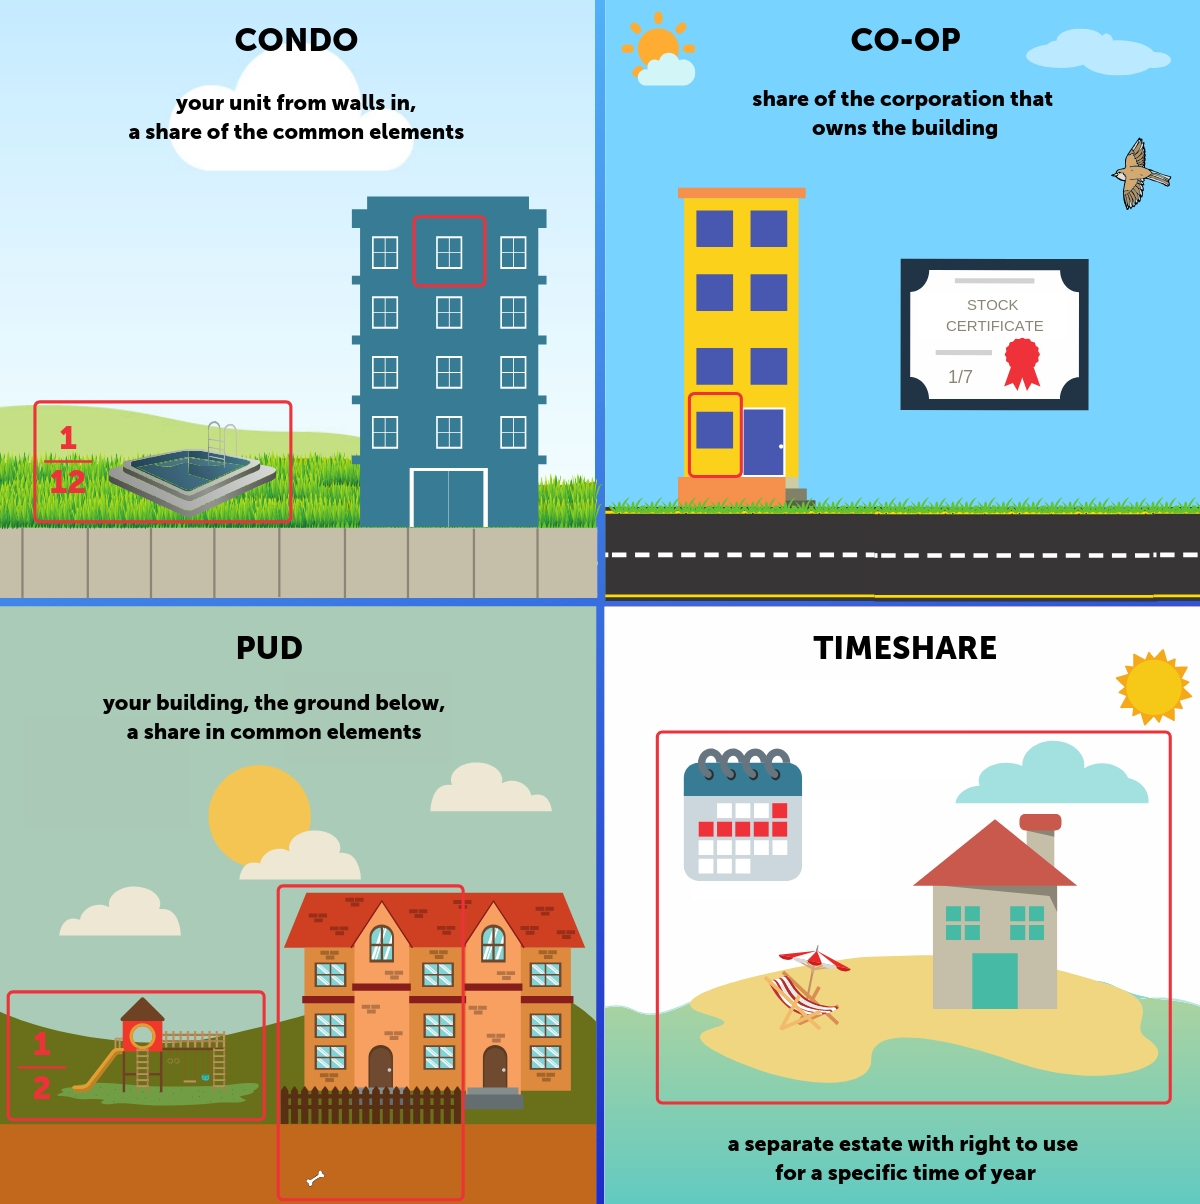 Condo, a Co-op, and a Townhouse comparison